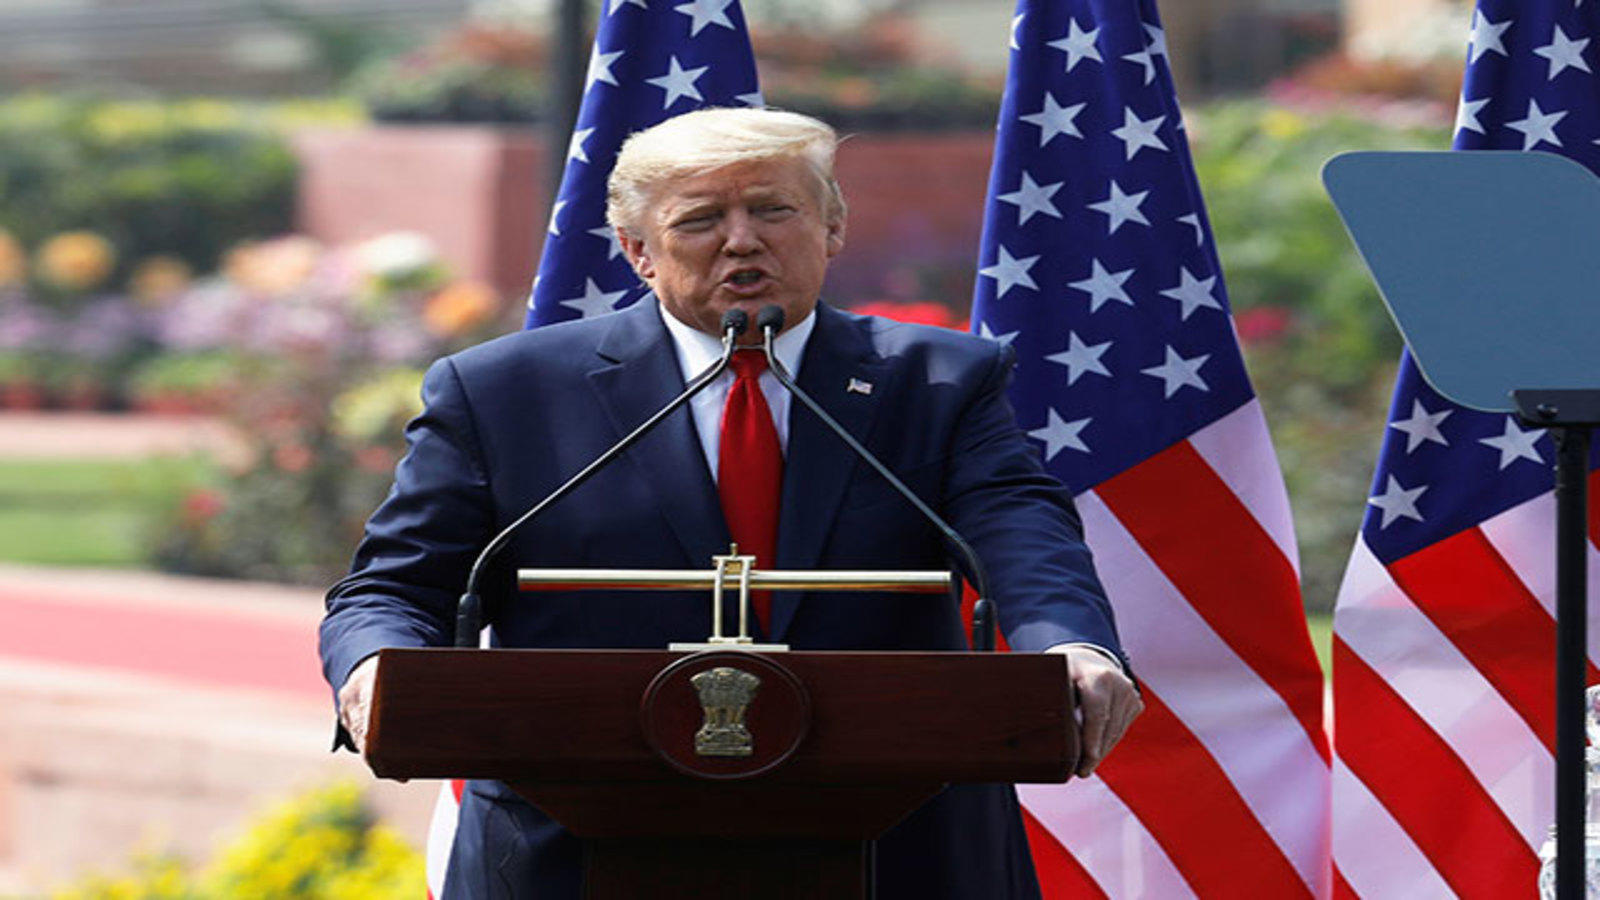 India to purchase more than USD 3 bn of advanced American military equipment: Trump